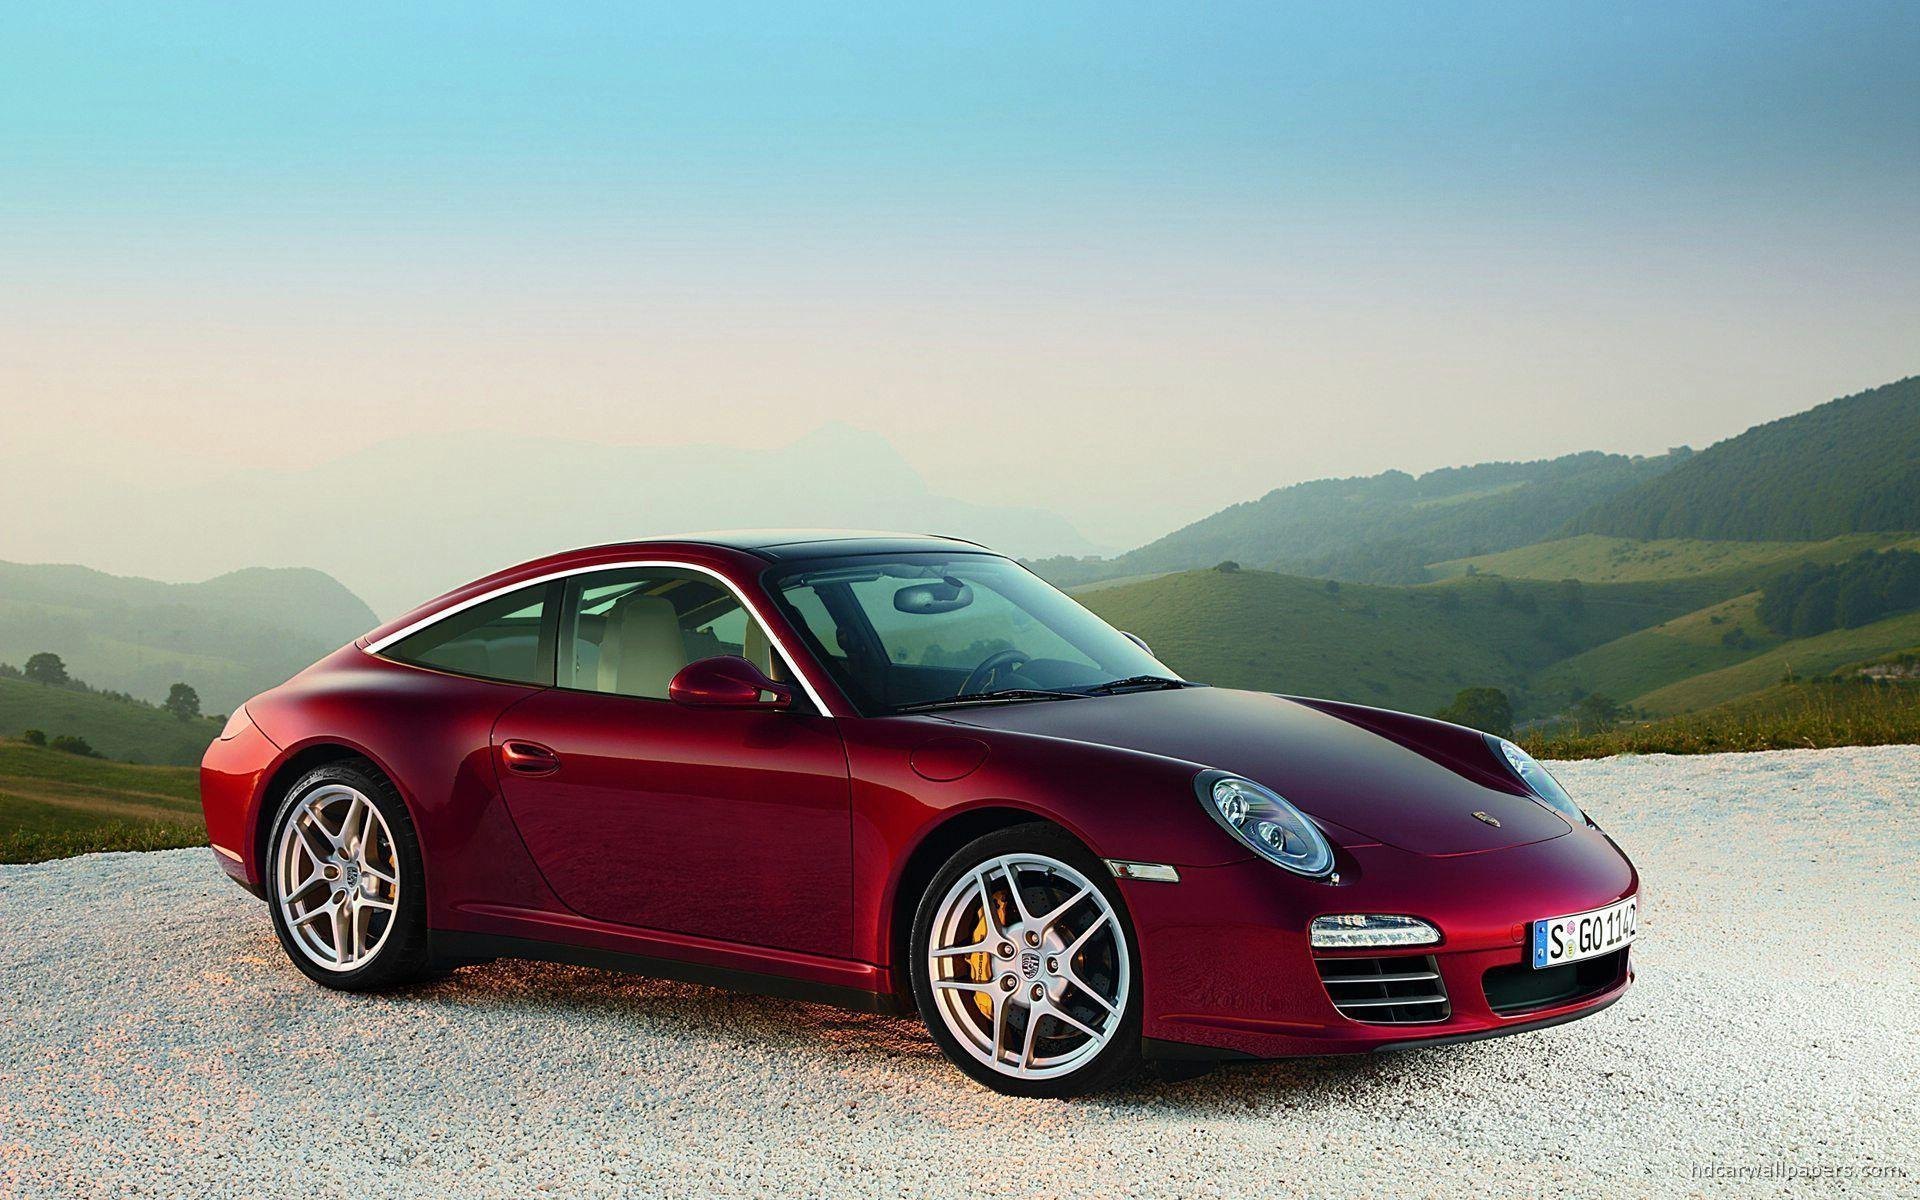 2011 Porsche 911 Turbo S Wallpapers | HD Wallpapers